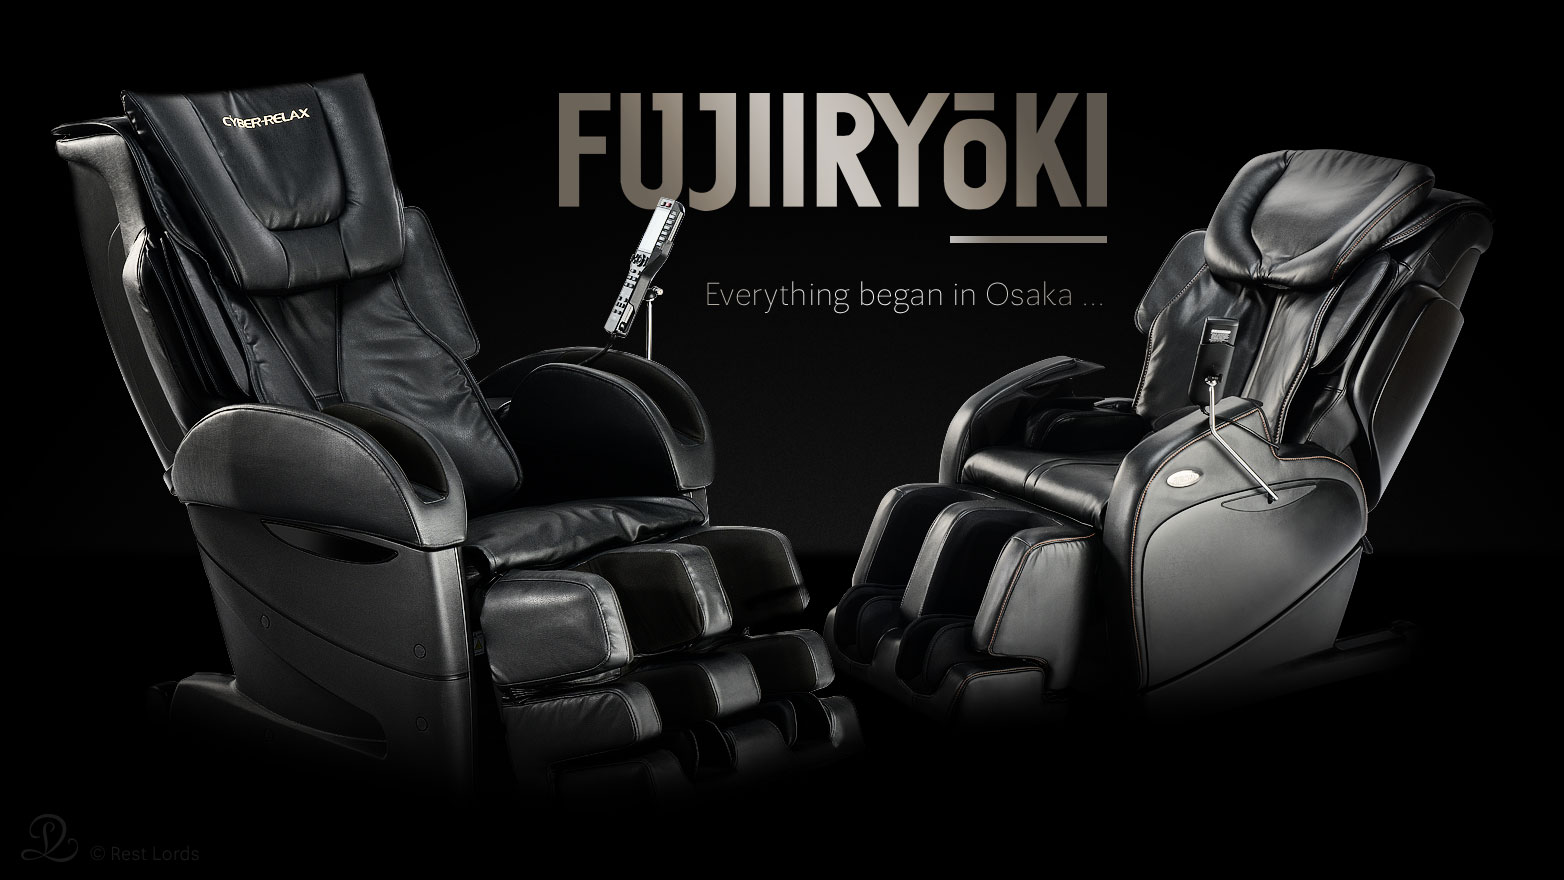 Massage chair Fujiiryoki